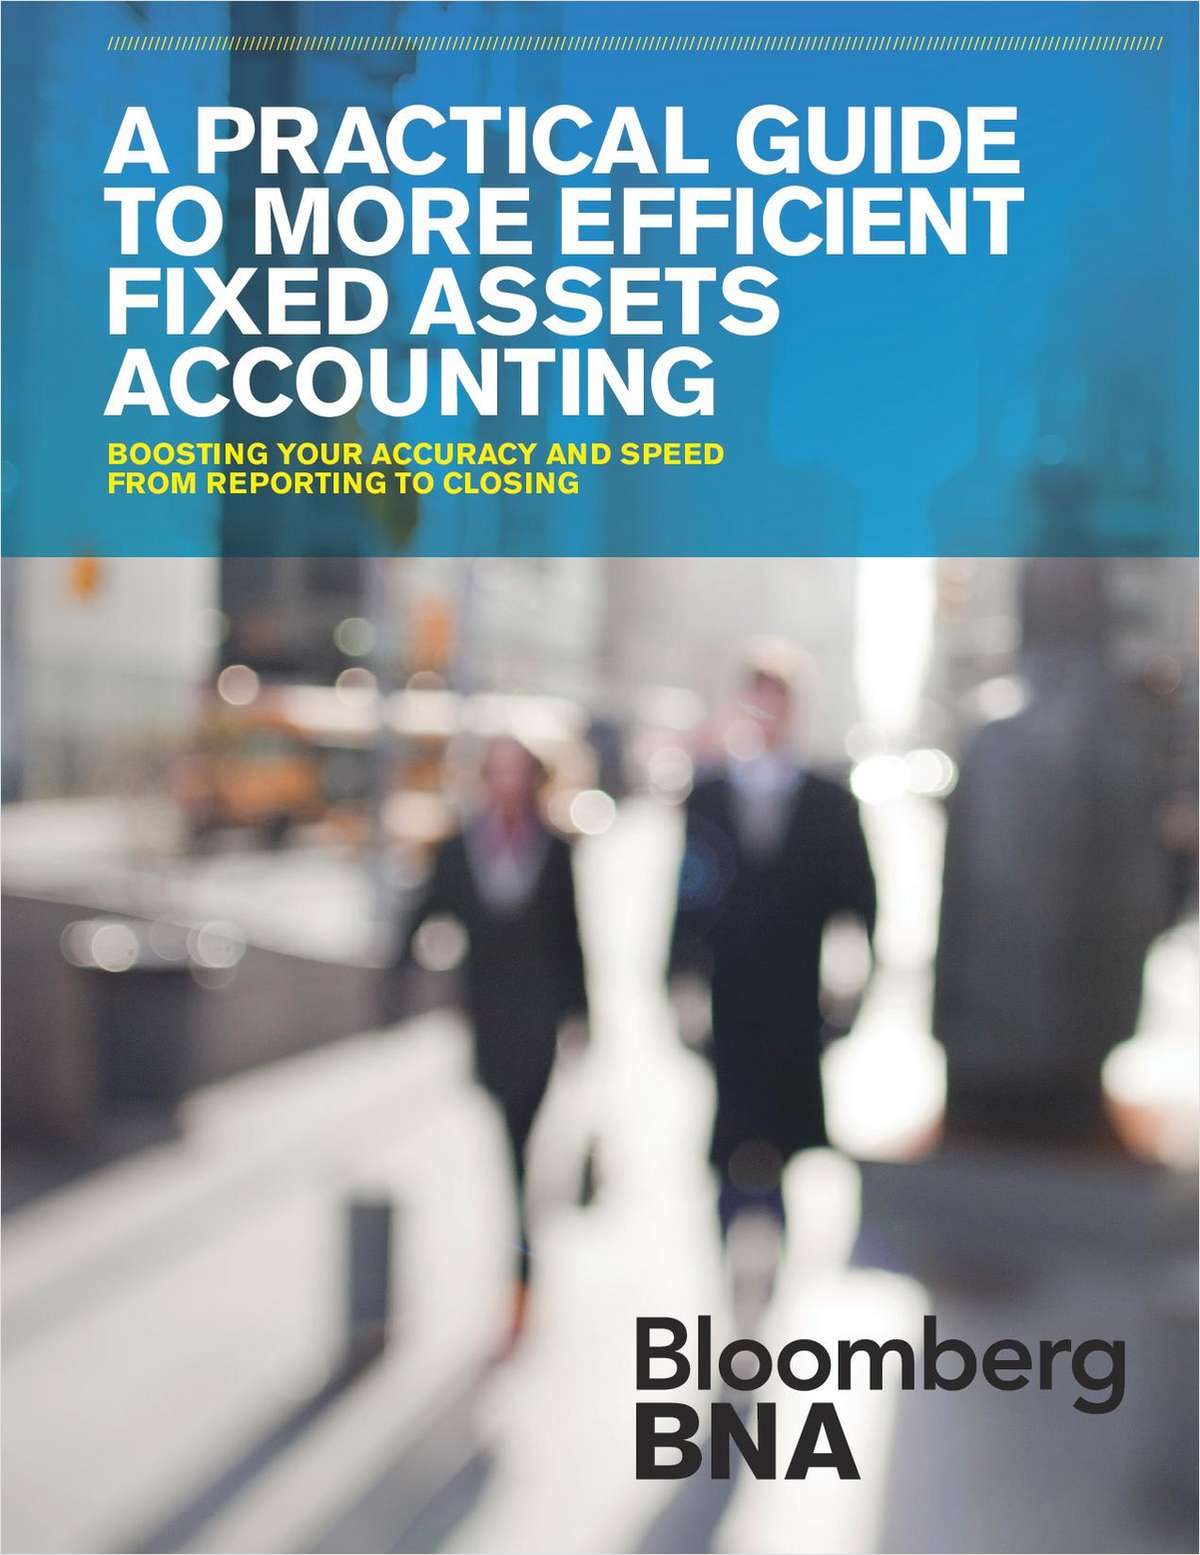 A Practical Guide to More Efficient Fixed Assets Accounting